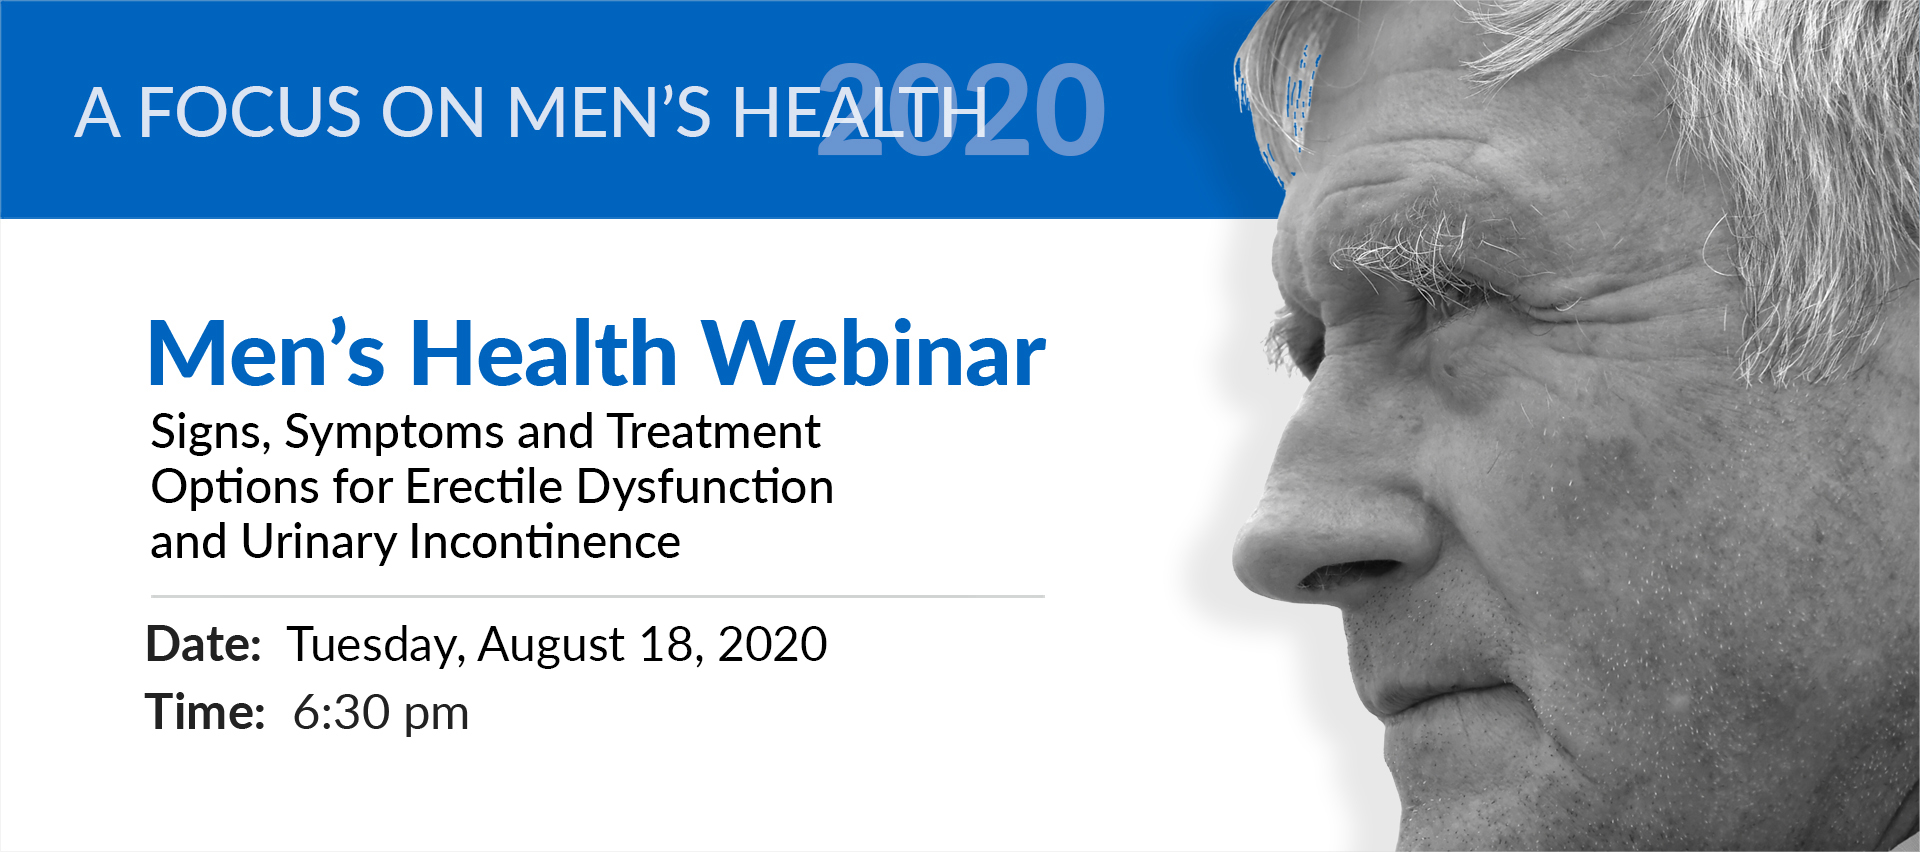 men's health webinar erectile dysfunction urinary incontinence